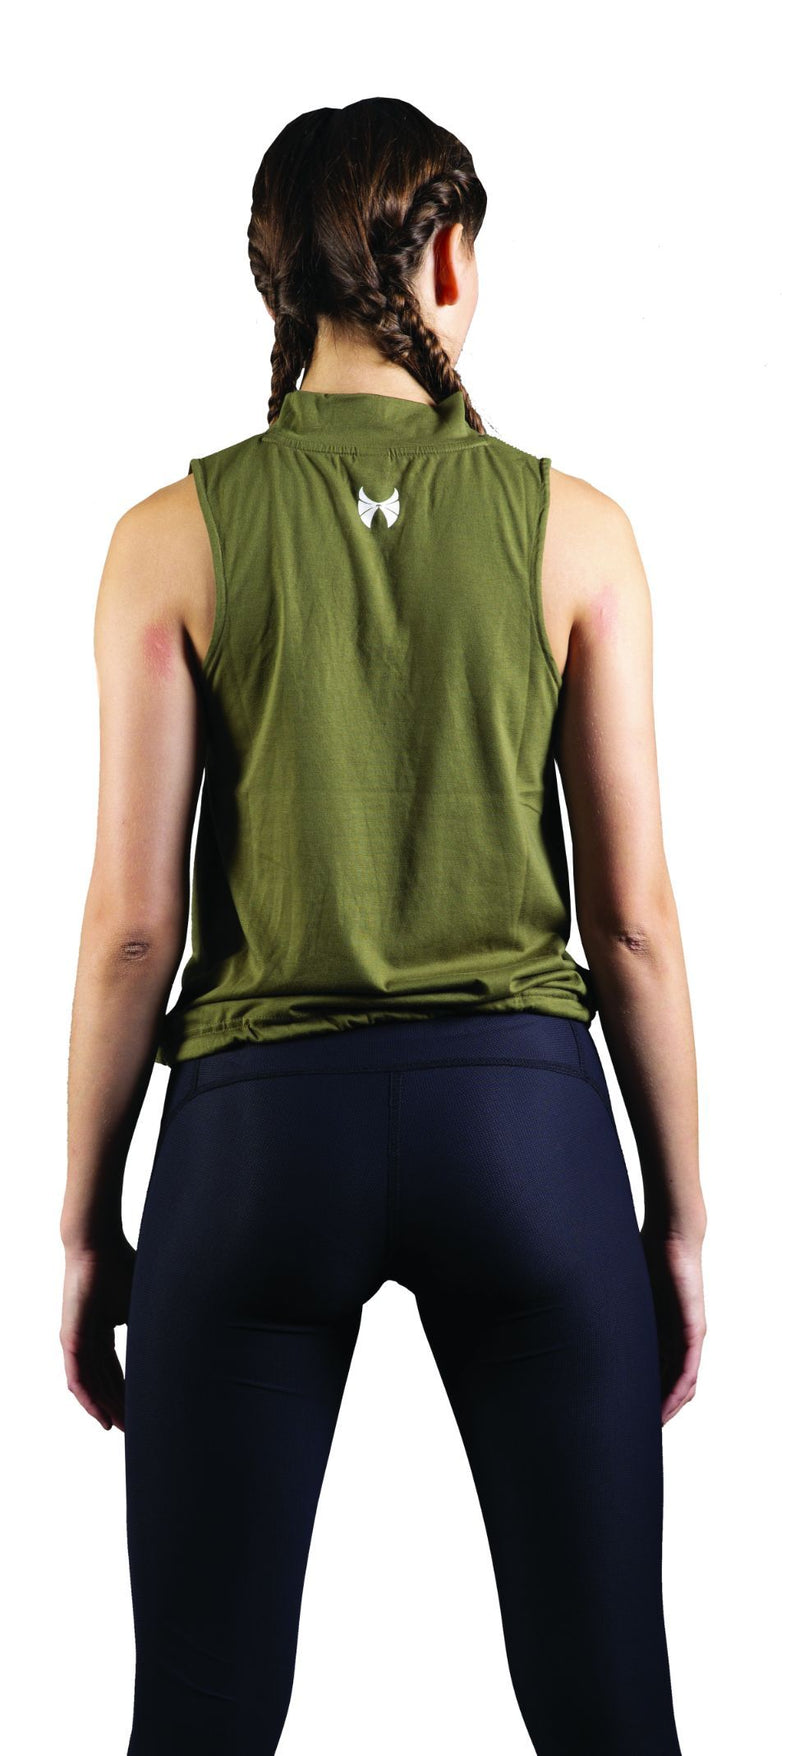 Best Slim Fit Top for Workout